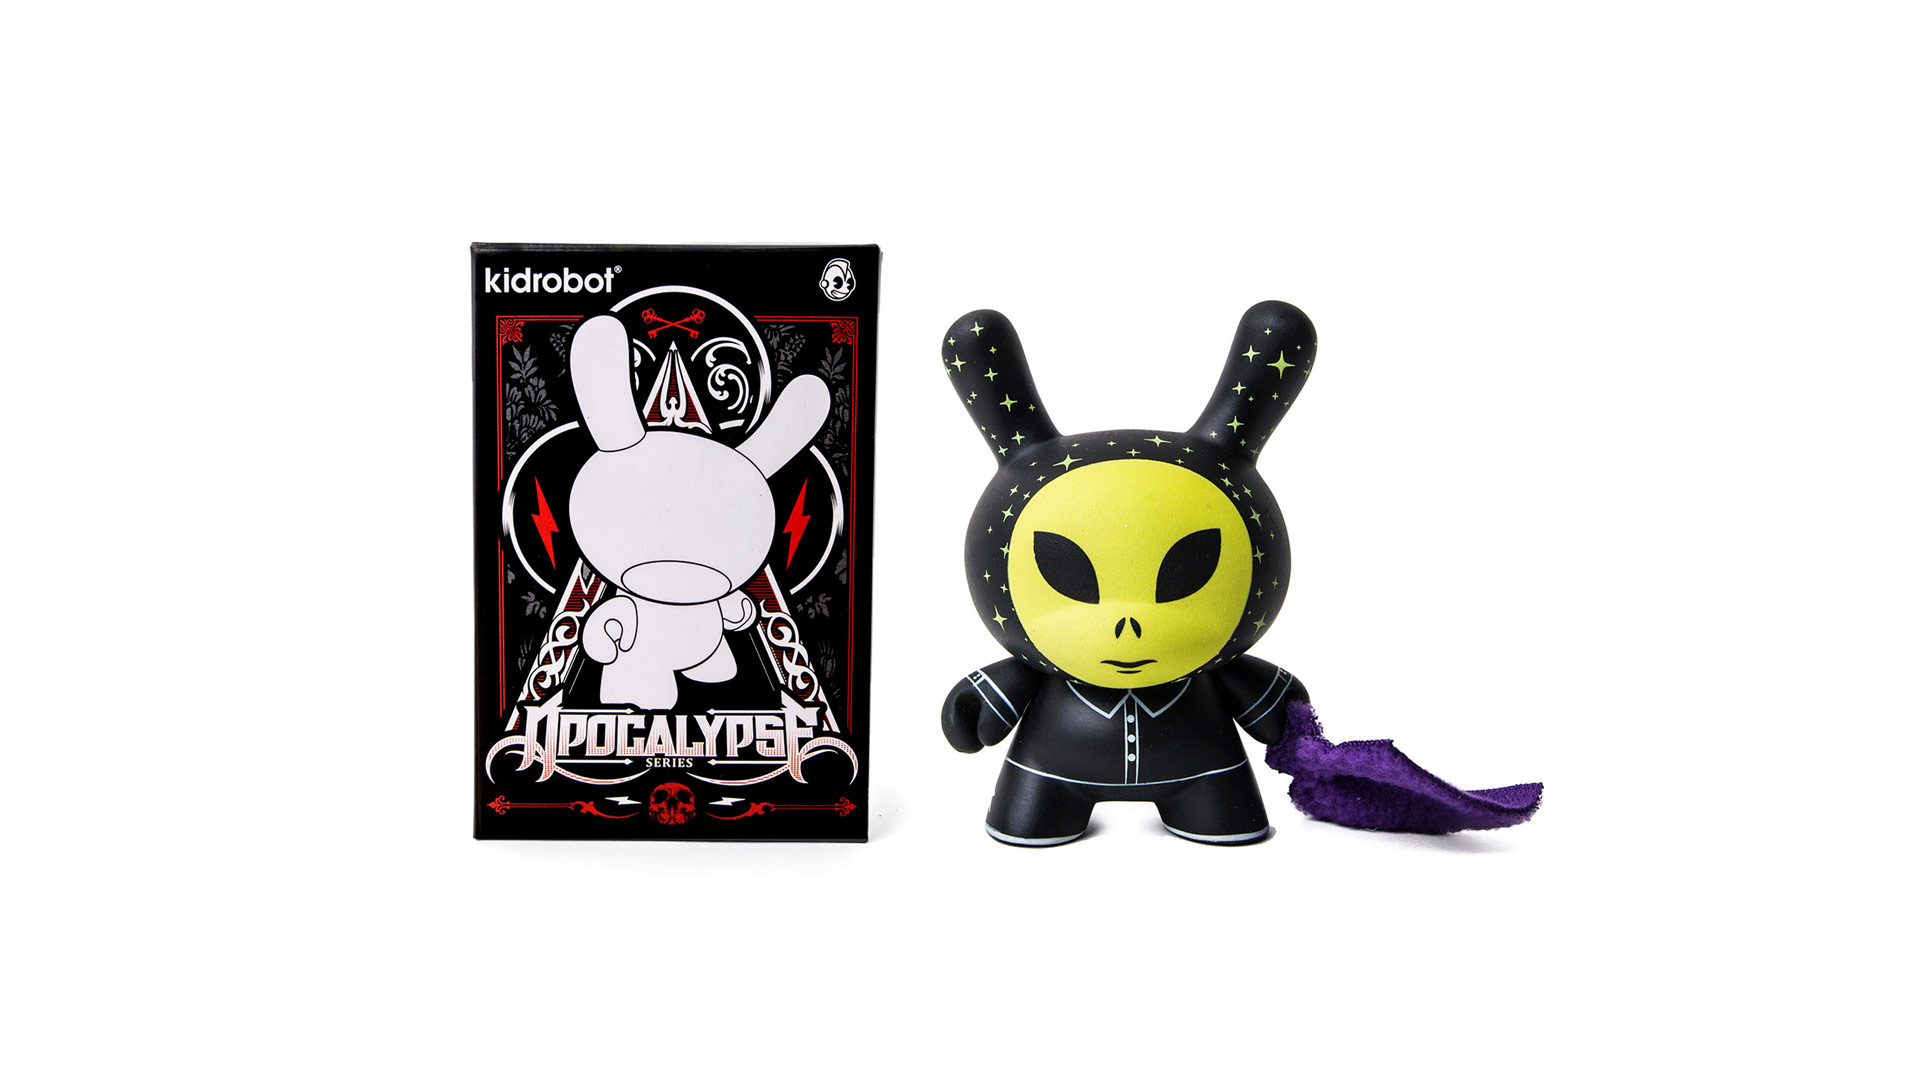 kid robot toy - yellow alien with black bunny costume